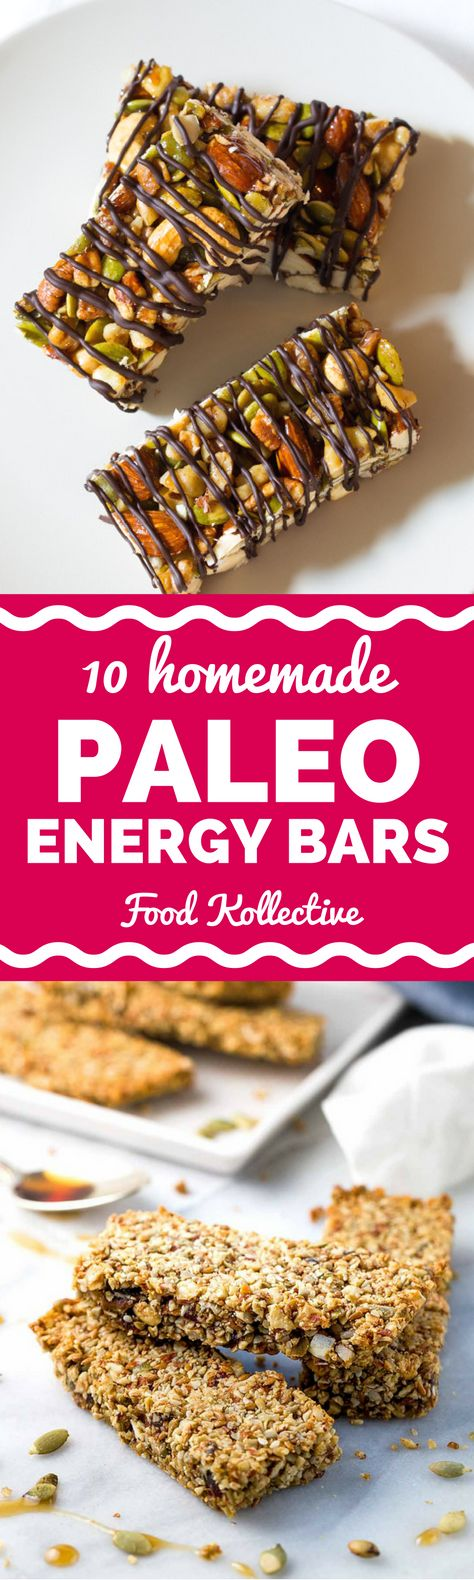 I was looking up recipes for homemade Paleo energy bars and these look perfect! There are recipes with chocolate, fruit, nuts, coconut, chia seeds, and more. I can't wait to make these for a quick and easy Paleo snack! Collected on FoodKollective.com